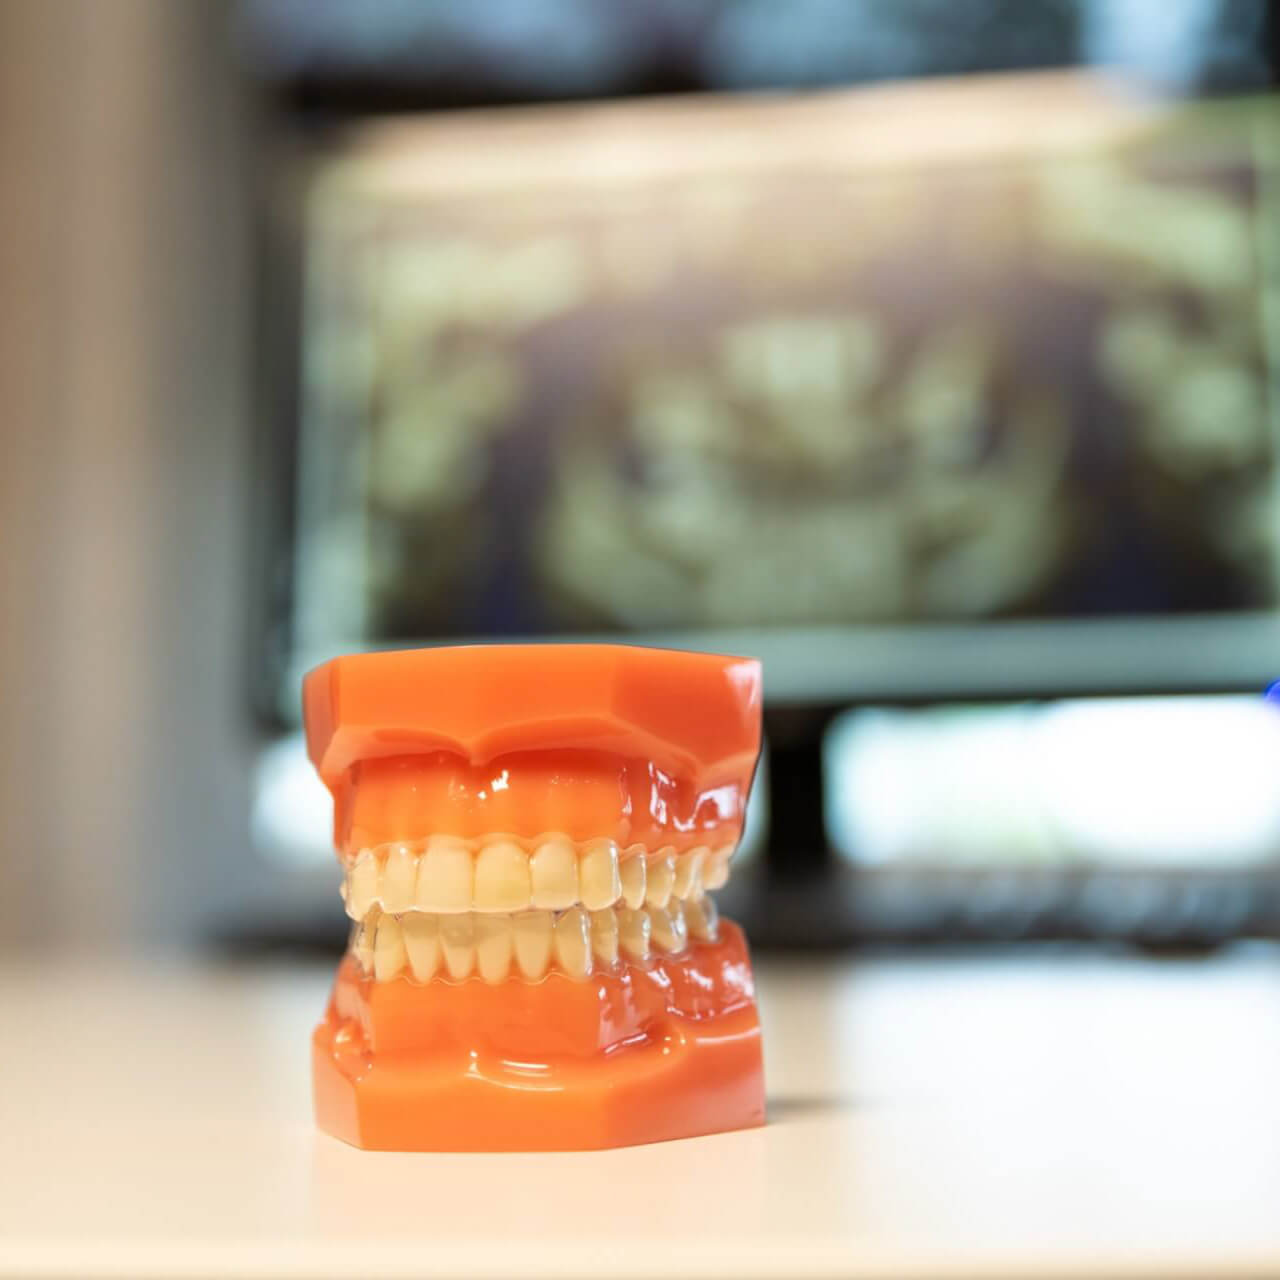 Invisalign can help improve your smile and gum health